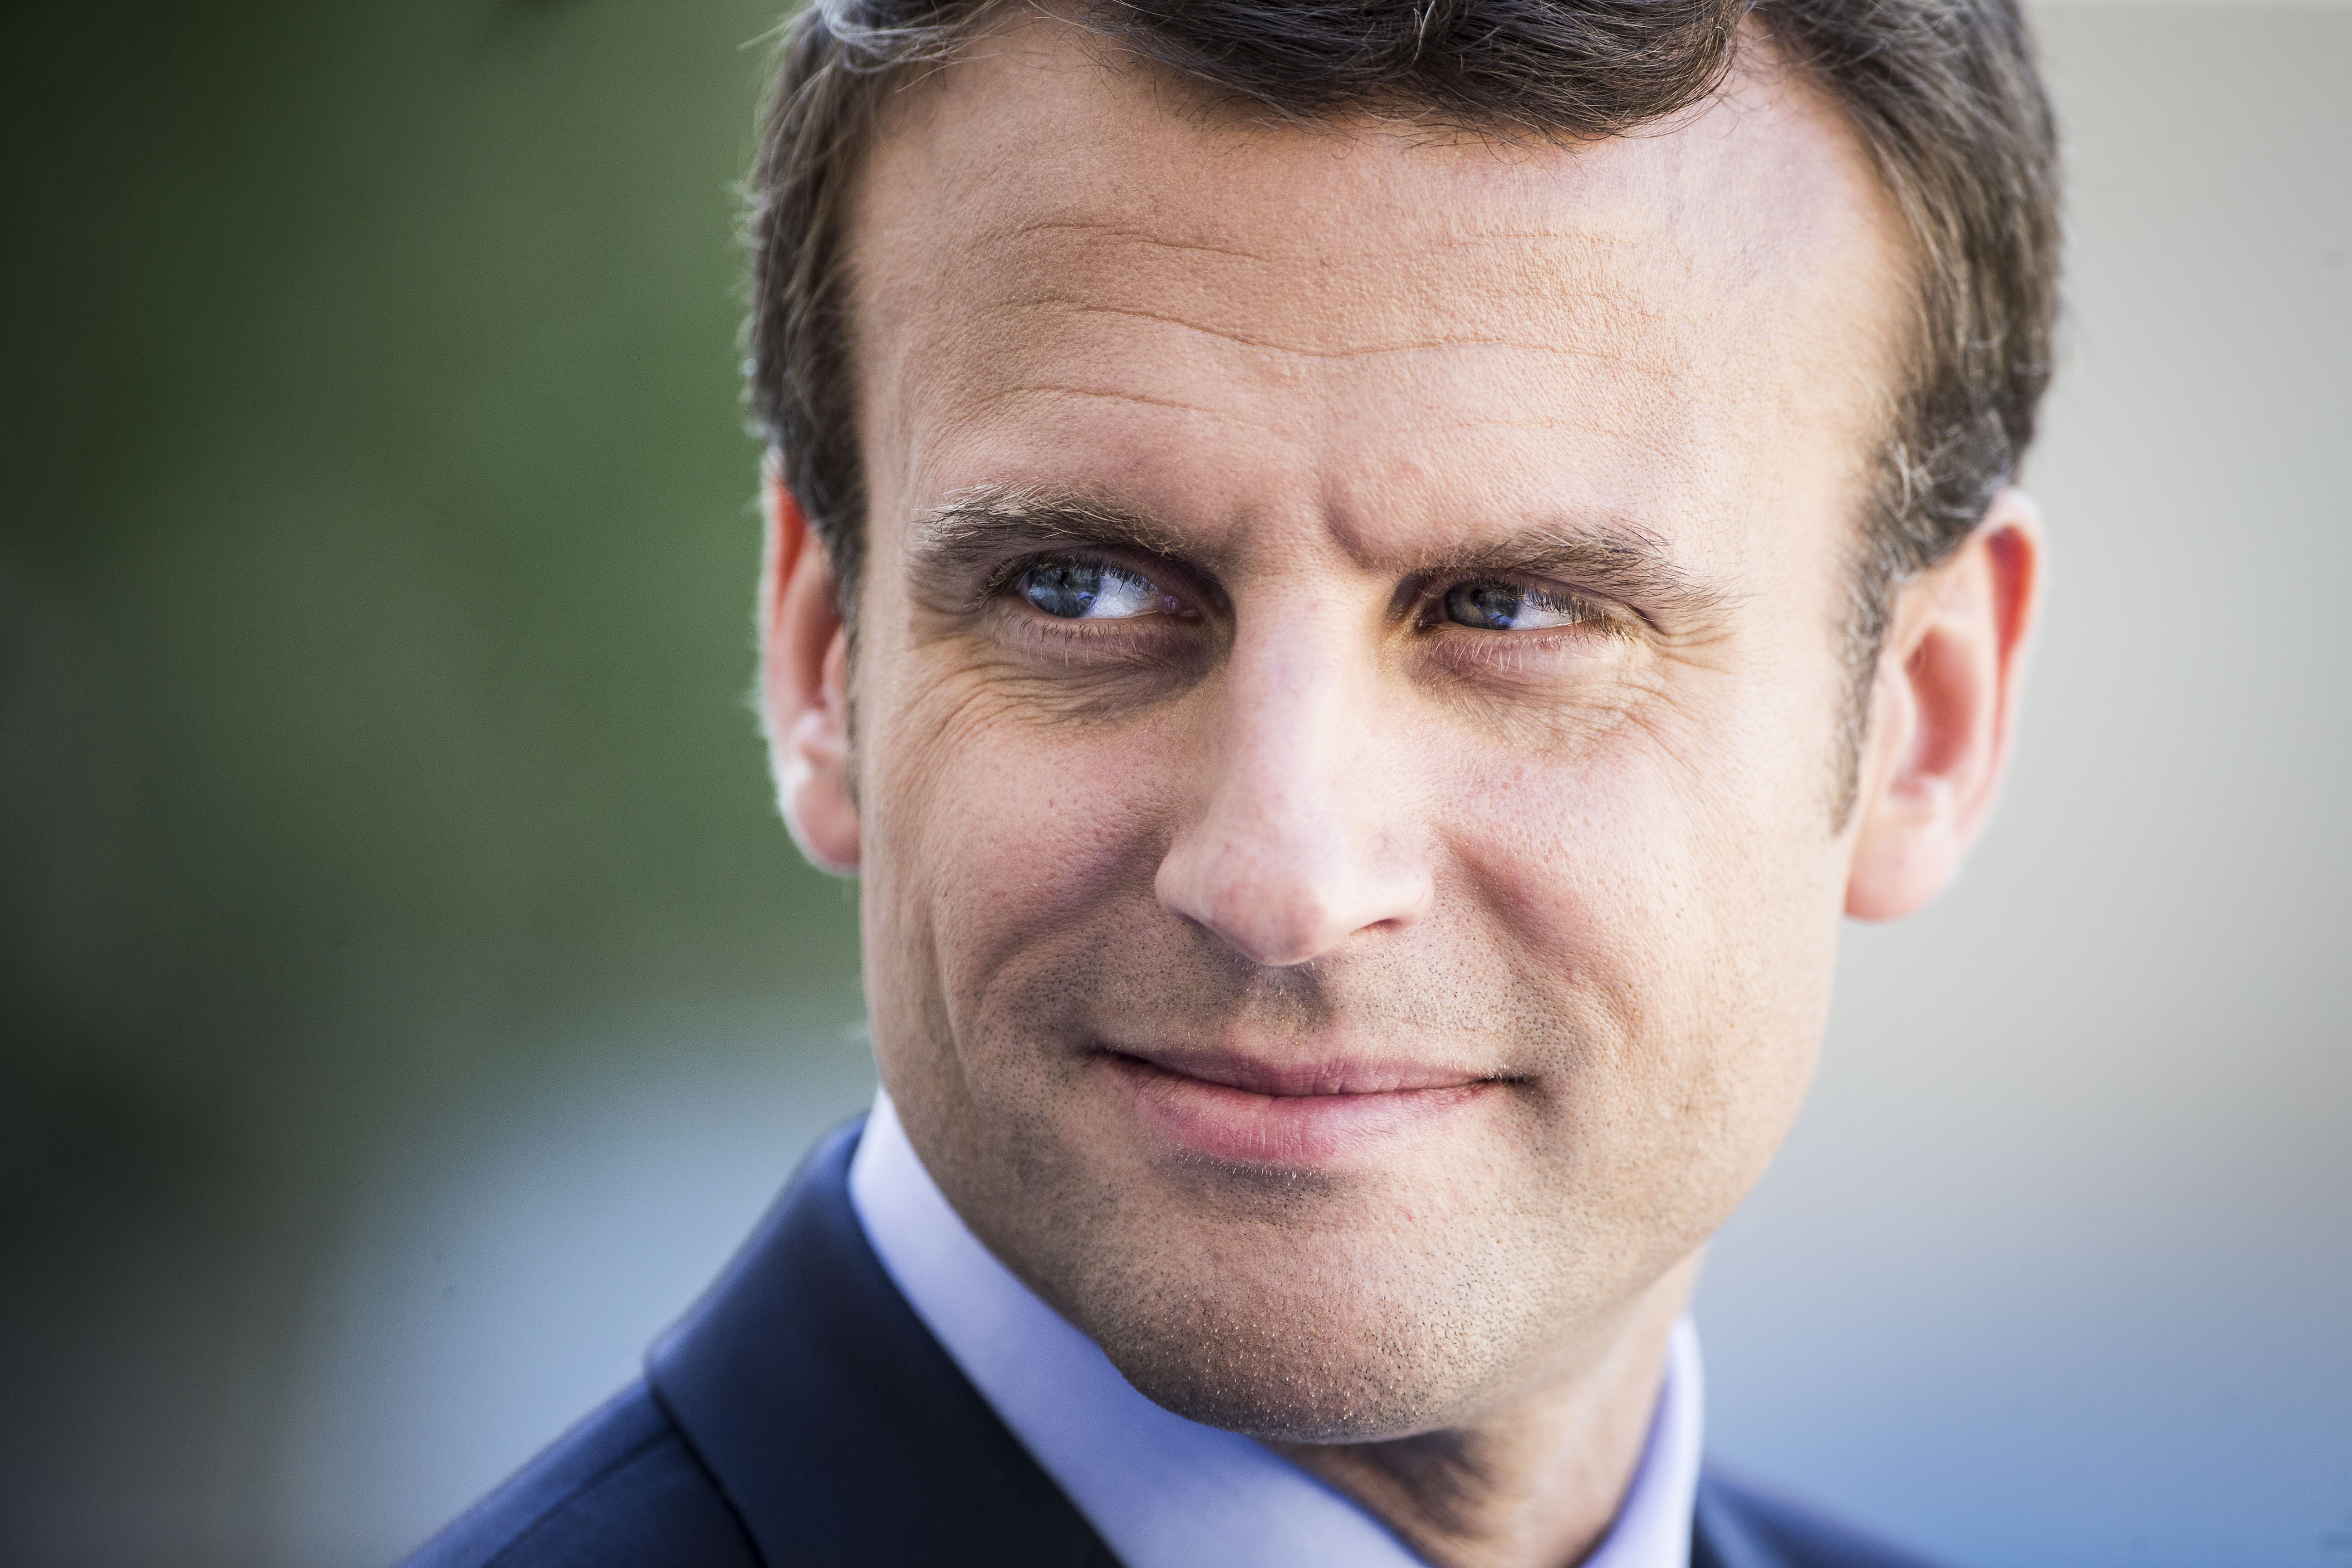 Macron Really Wants To Make Our Planet Great Again With Grants For U S Scientists